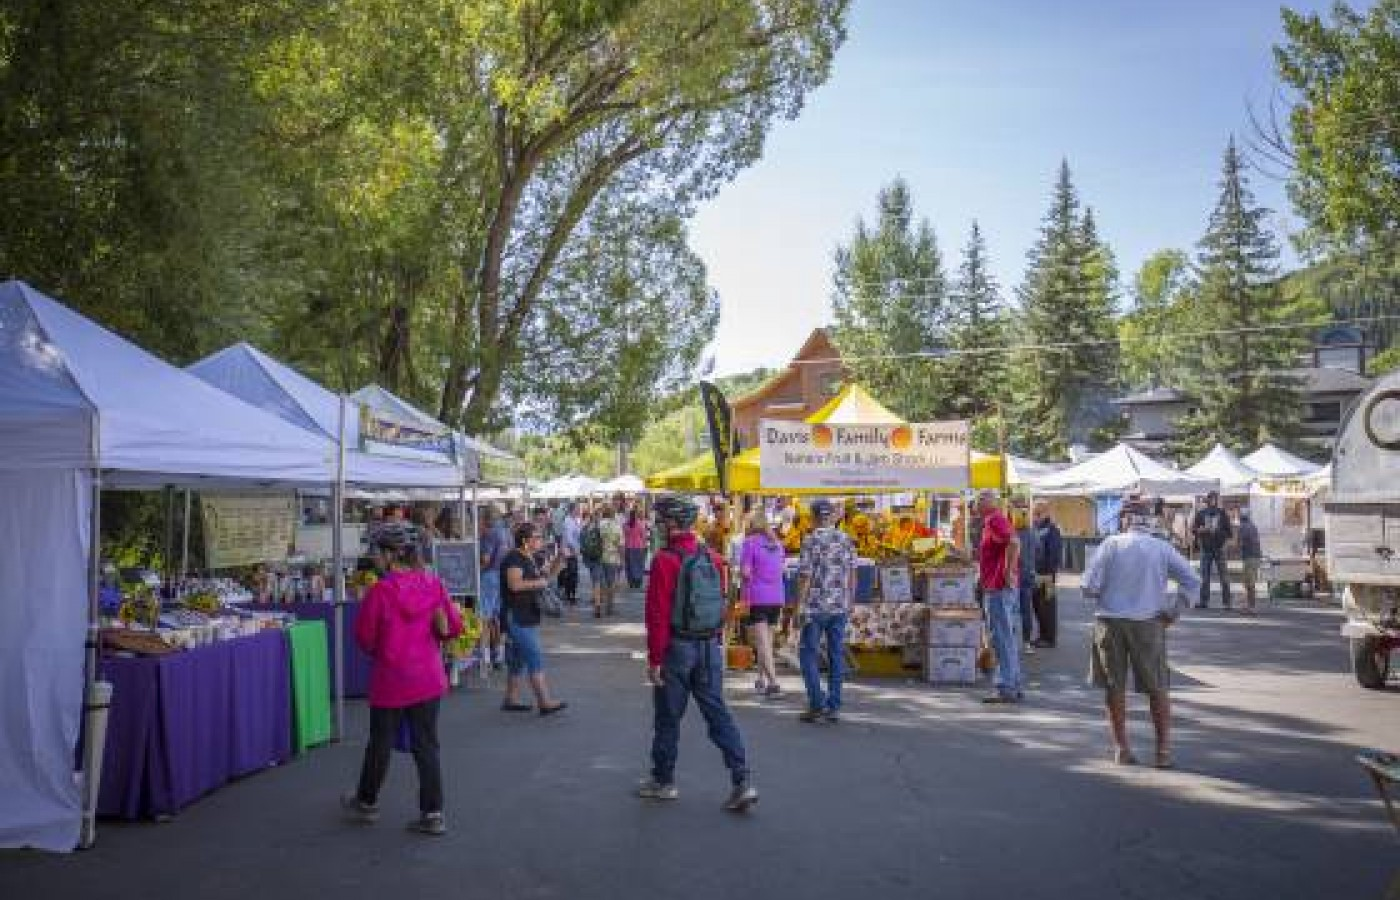 The Main Street Steamboat Farmers Market is scheduled to be held every Saturday from June 5-September 18, 2021.